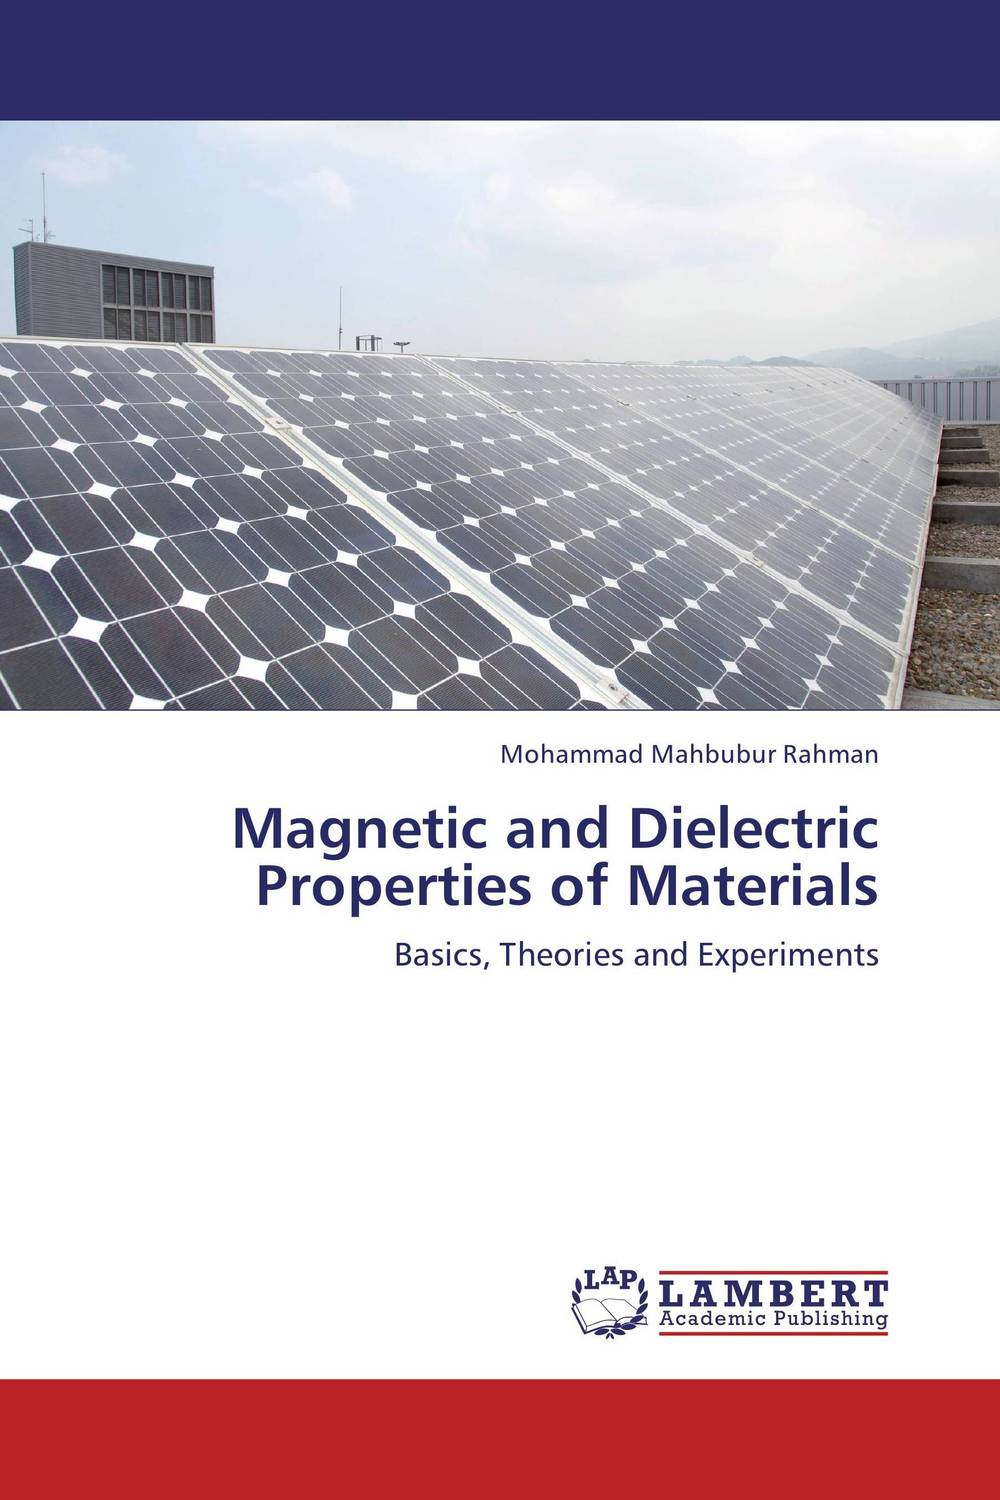 Magnetic and Dielectric Properties of Materials купить